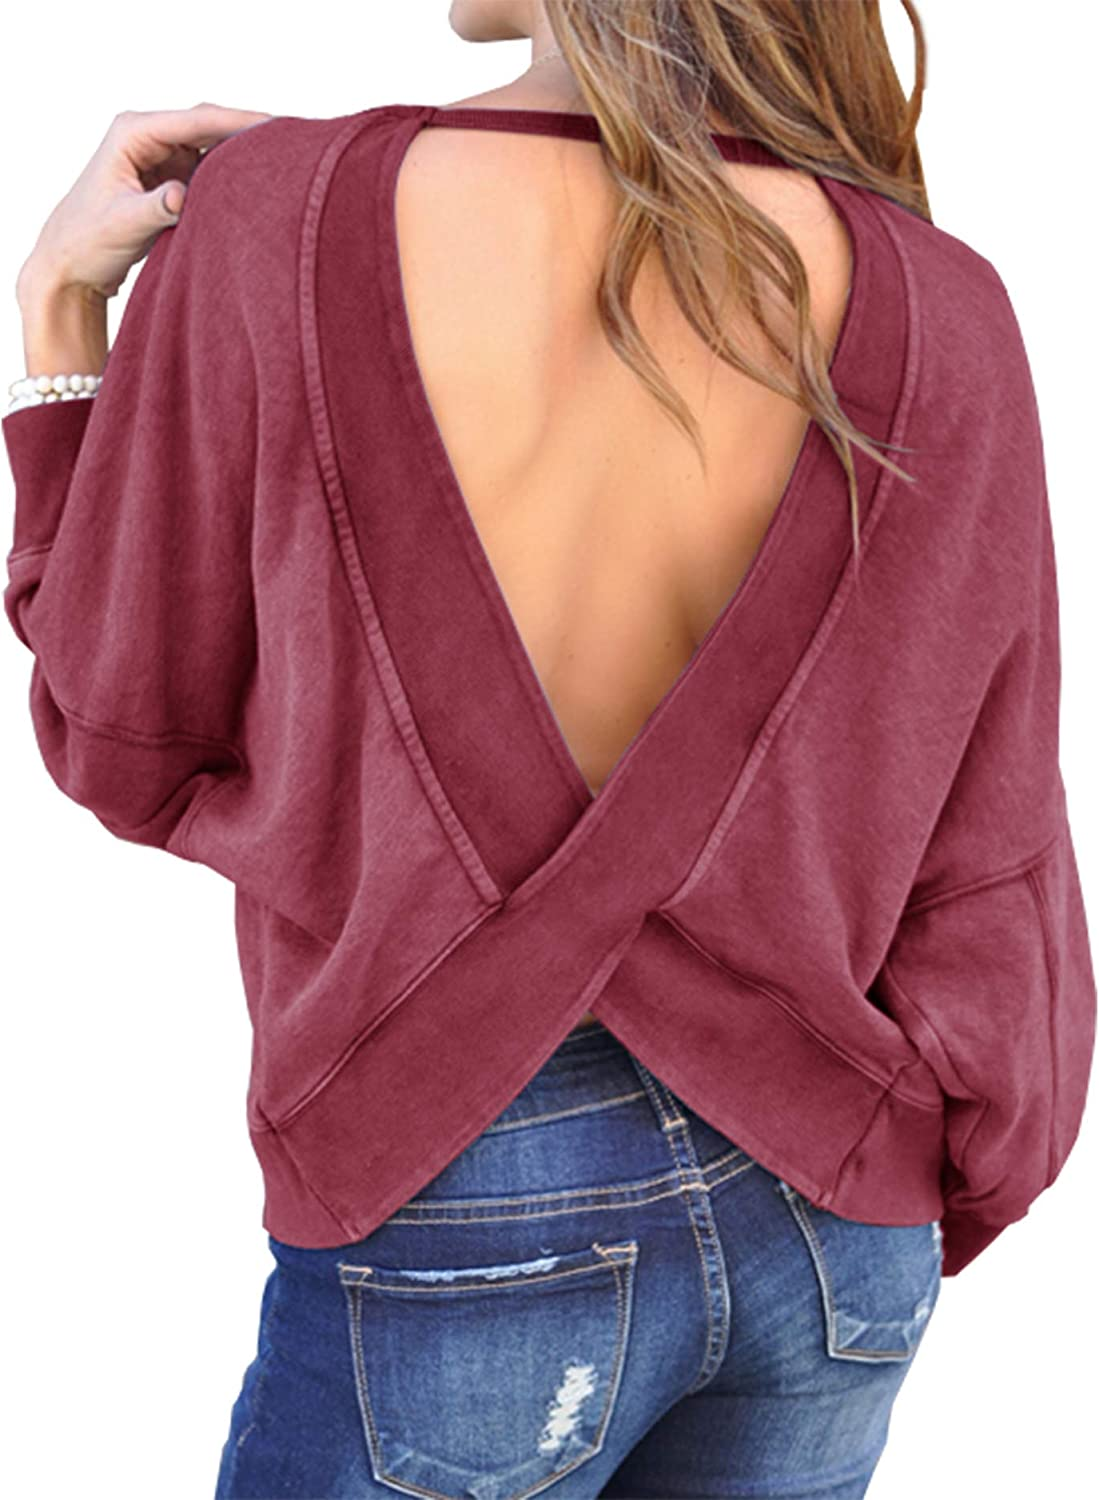 Sexyshine Womens V Neck Criss Cross Backless Sweater Pullovers Wine